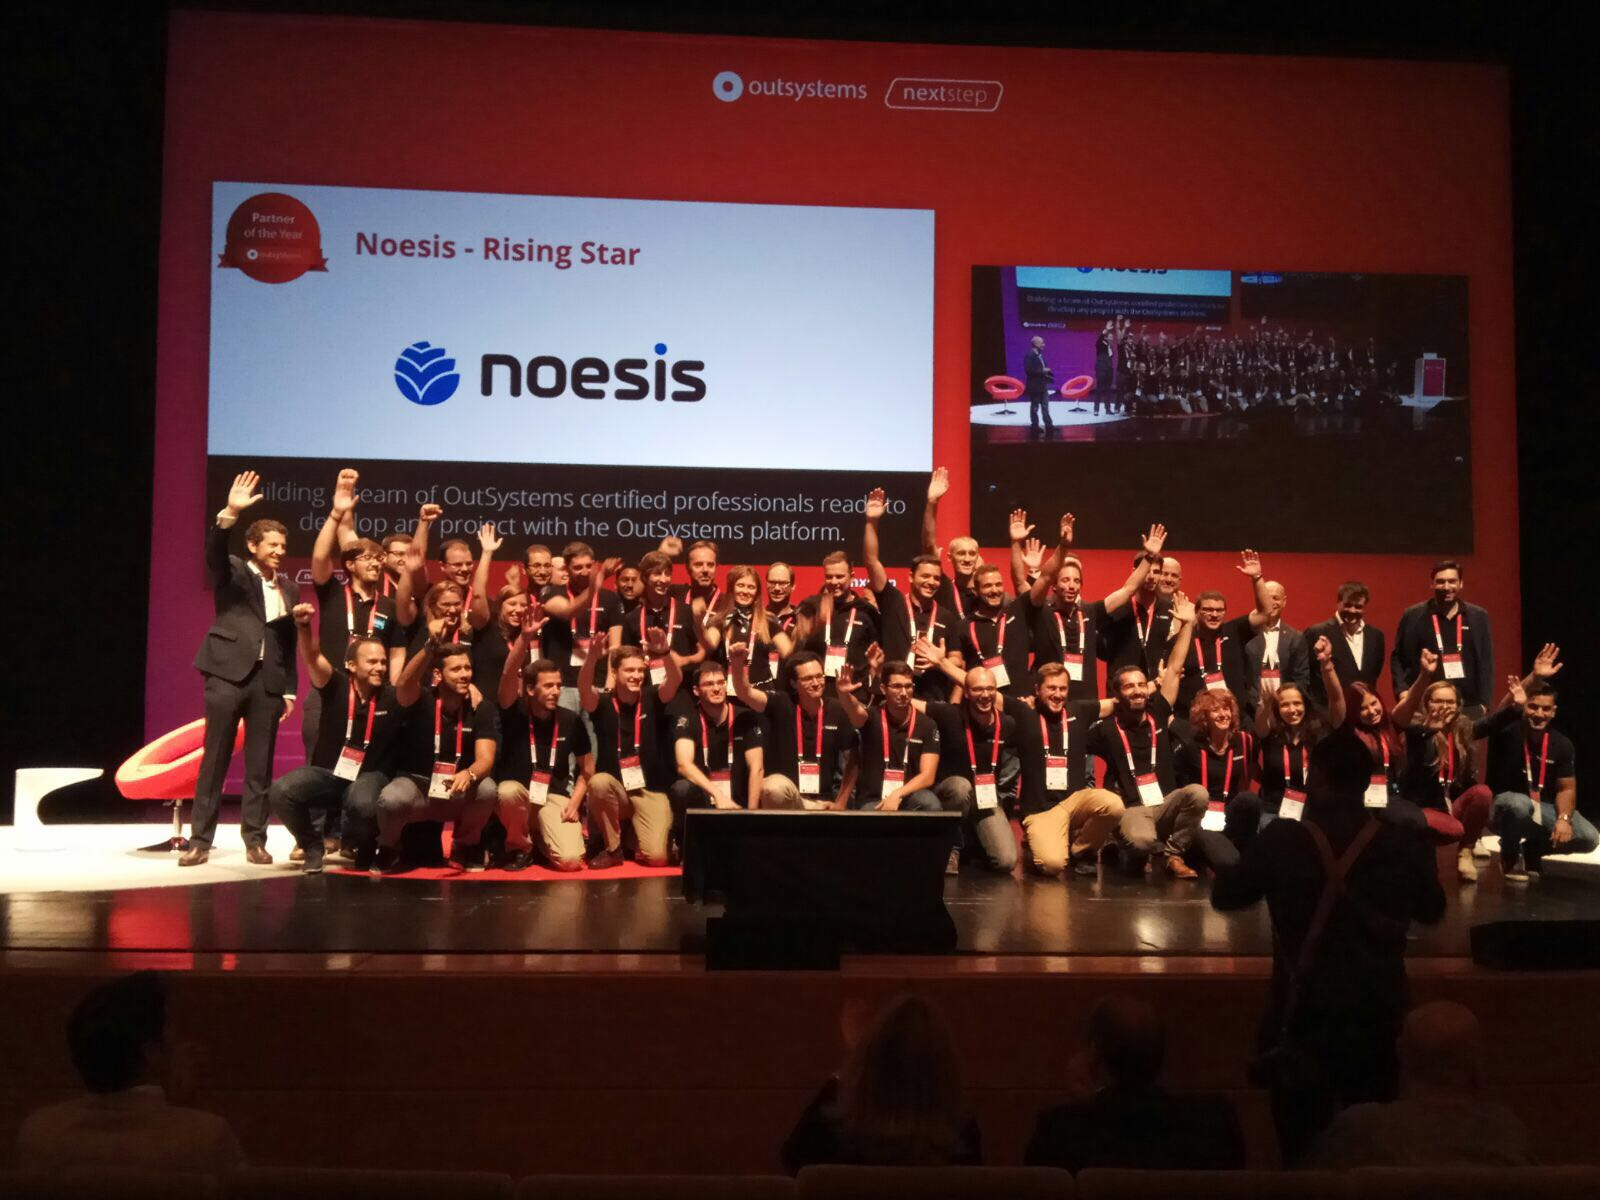 Team Noesis at OutSystems NextStep represents Specialized Team